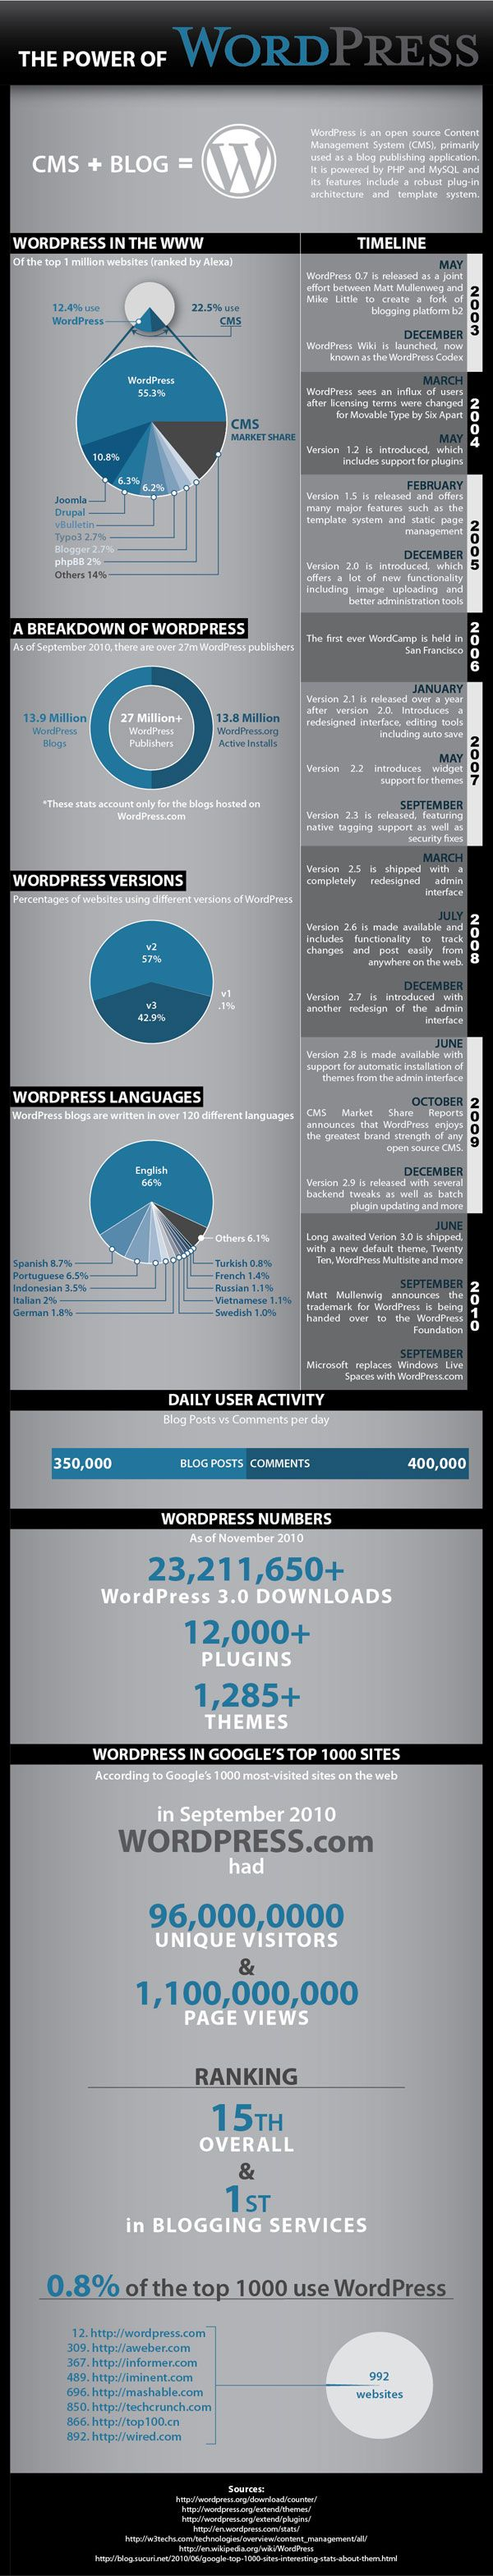 The Power of Wordpress #infographic